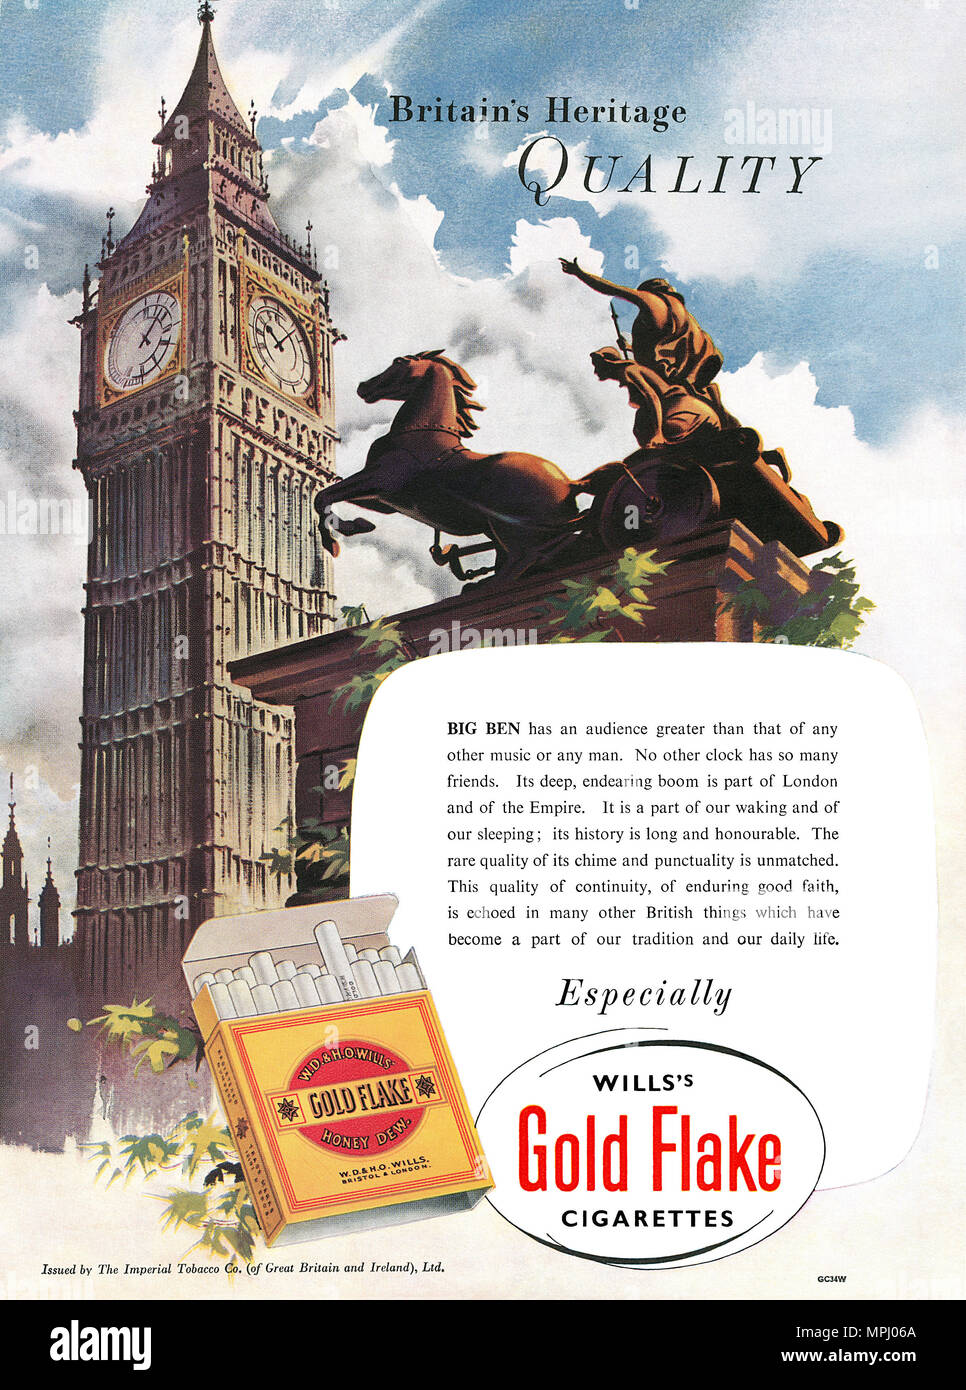 1951 British advertisement for Will's Gold Flake cigarettes. - Stock Image